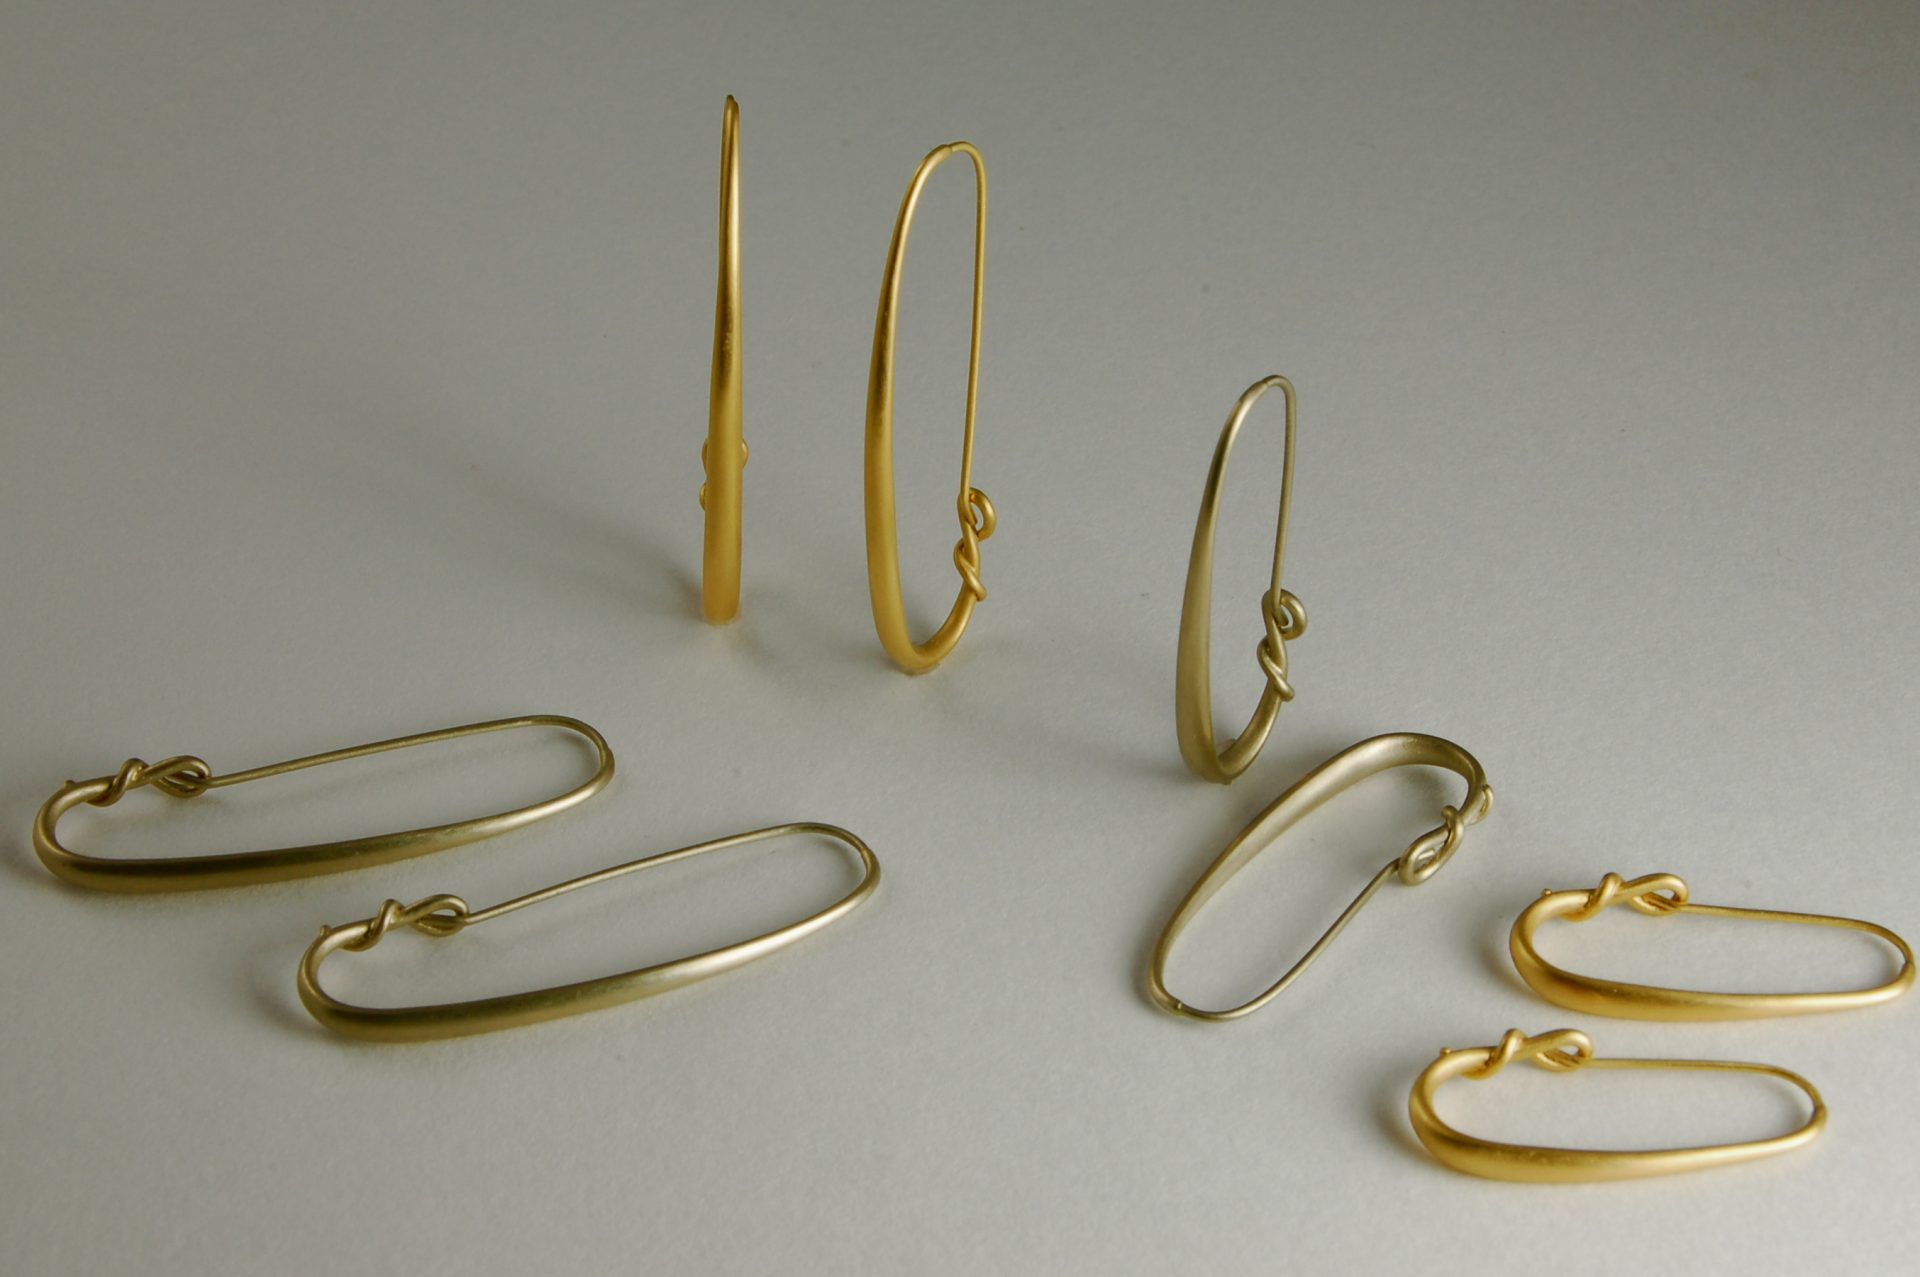 Large and Small Eclipse Hoop Earrings in Yellow and White Gold